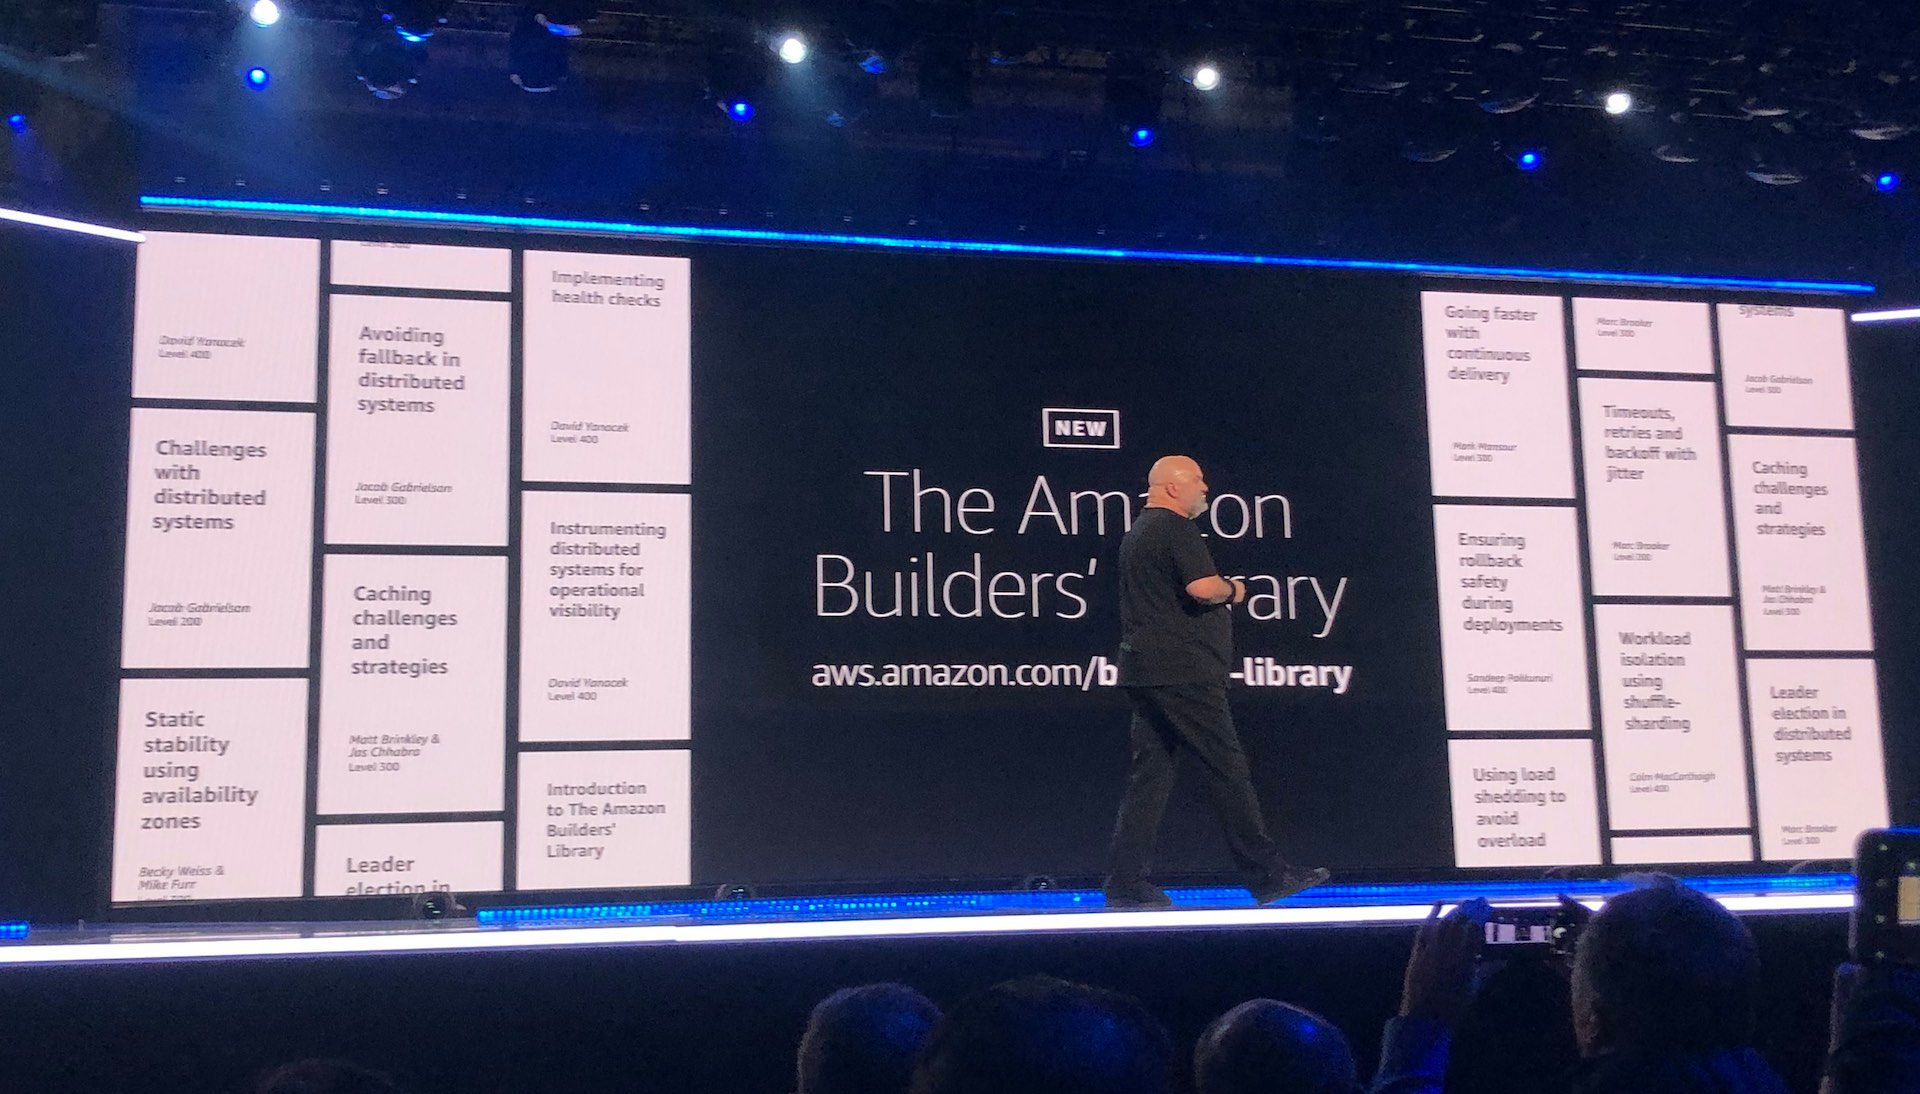 re:Invent Revisited - The Amazon Builders Library